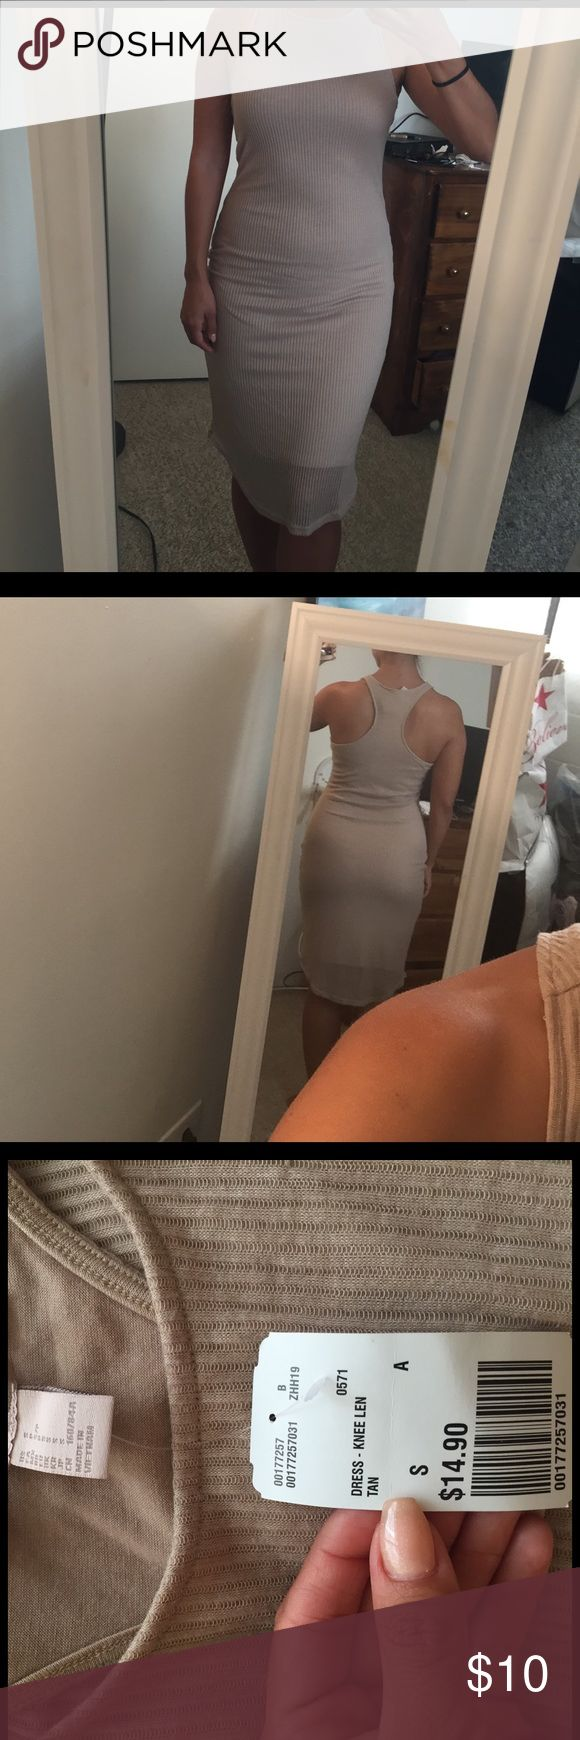 Nude long dress NWT forever 21 dress, size small. Flattering on curves Forever 21 Dresses Maxi